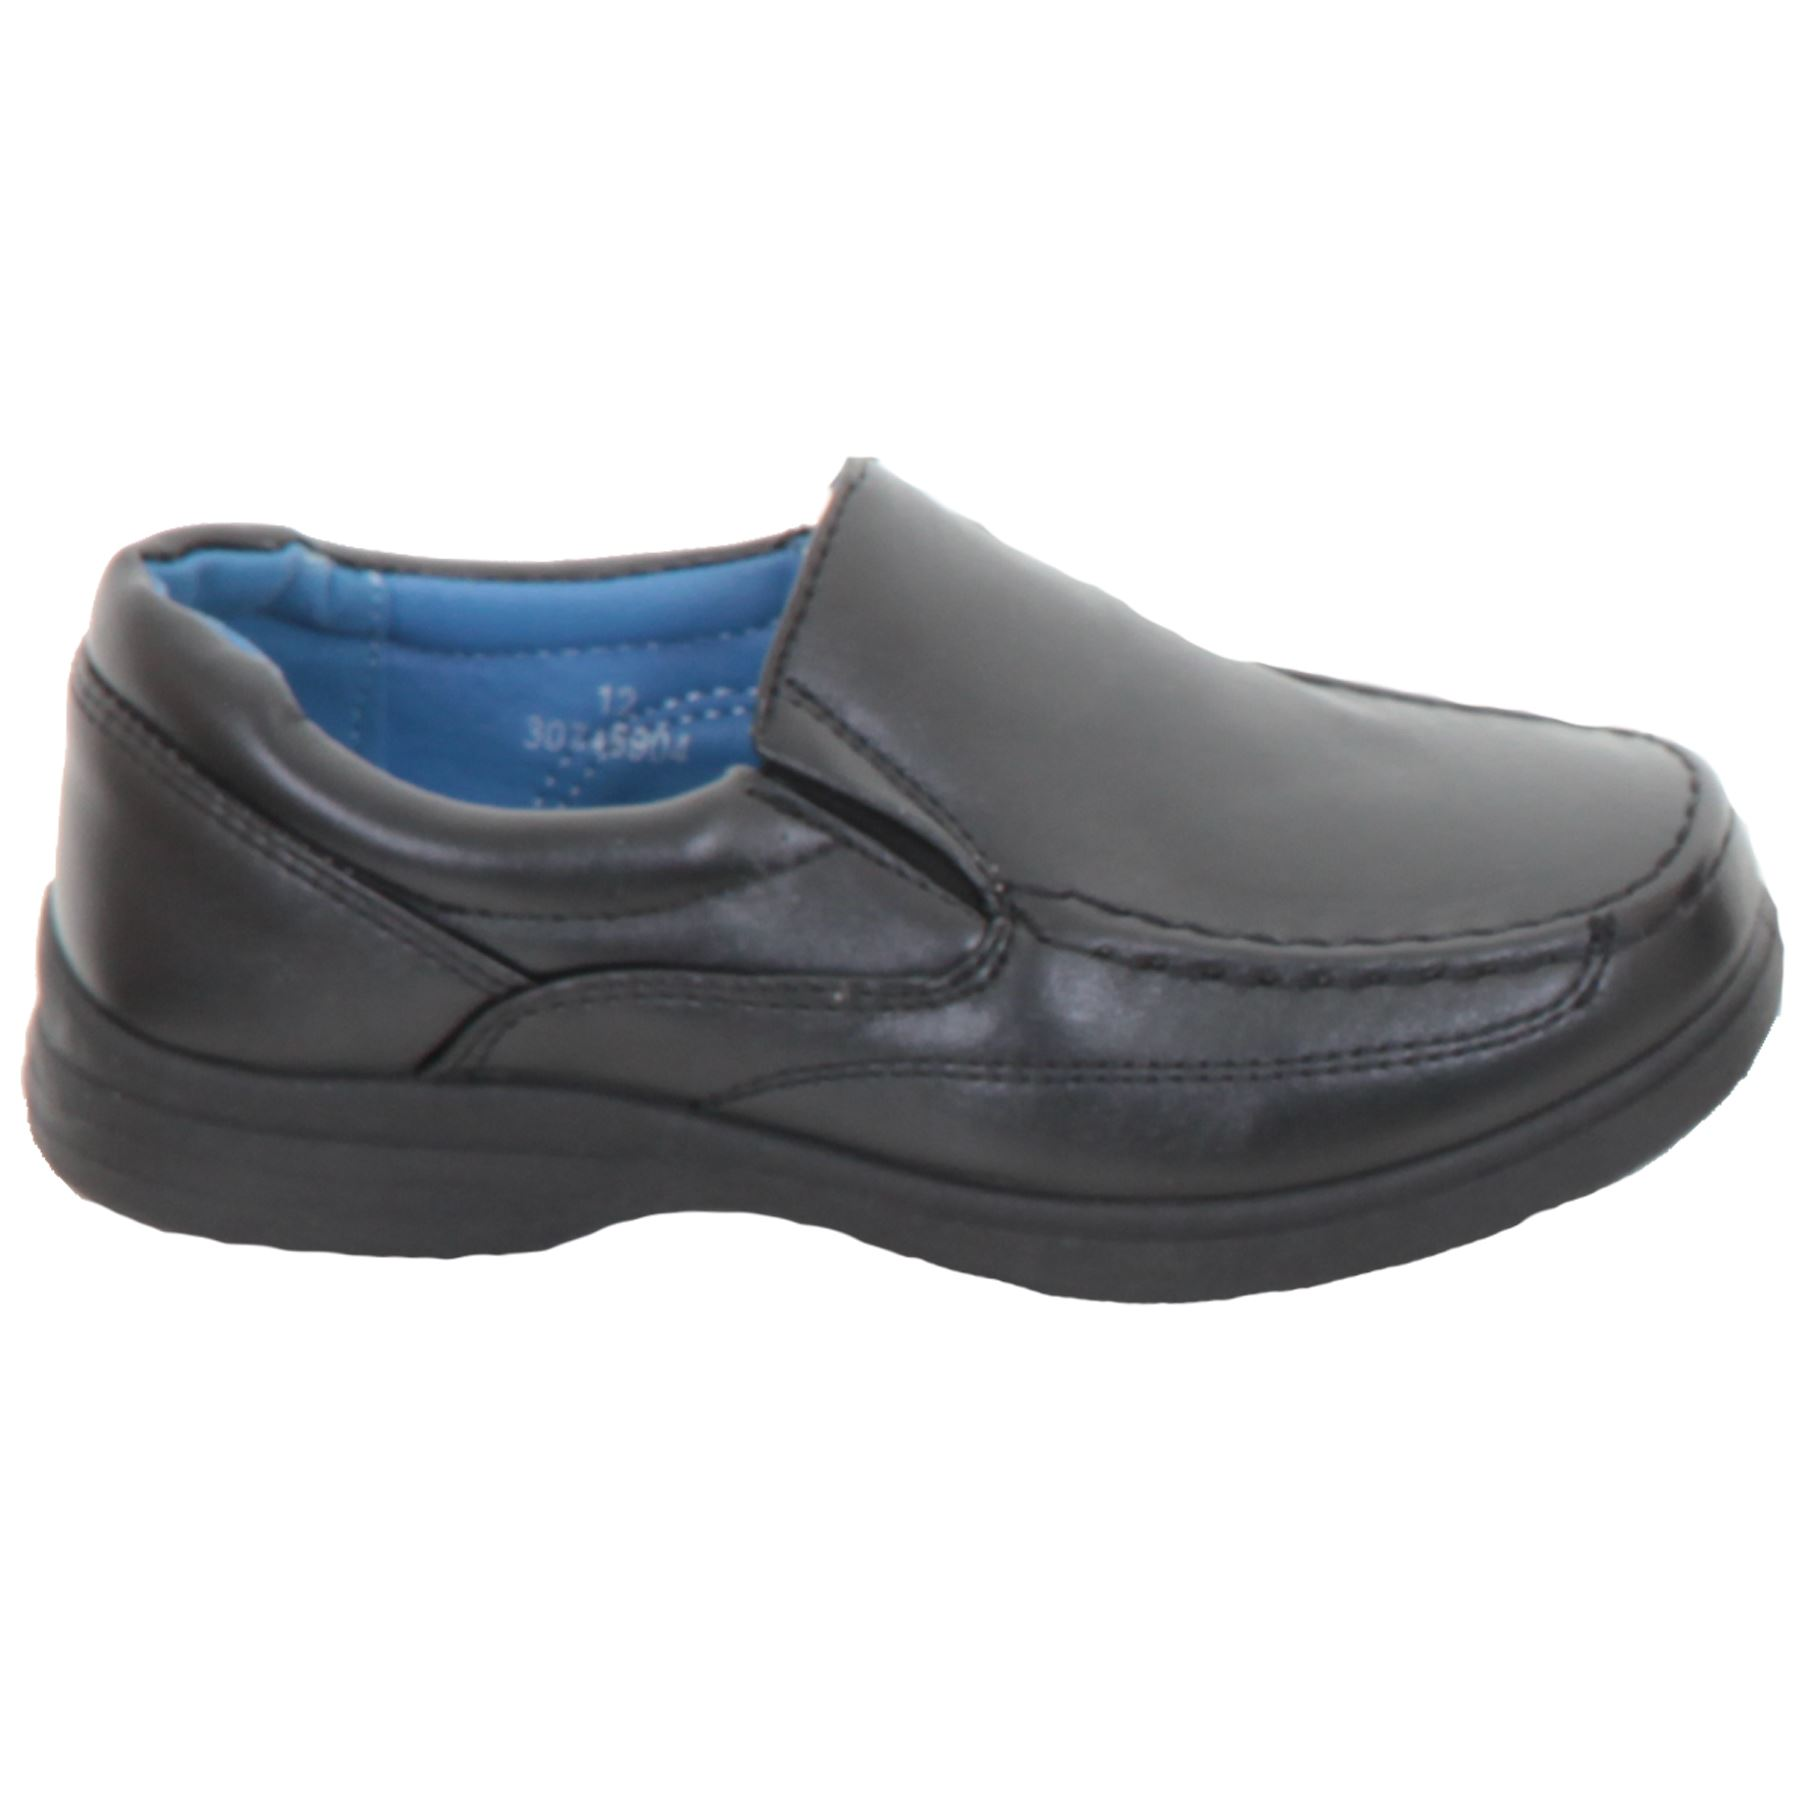 Kids Slip On Faux Leather Back To School Smart Loafer Boys Comfy Flat Shoes